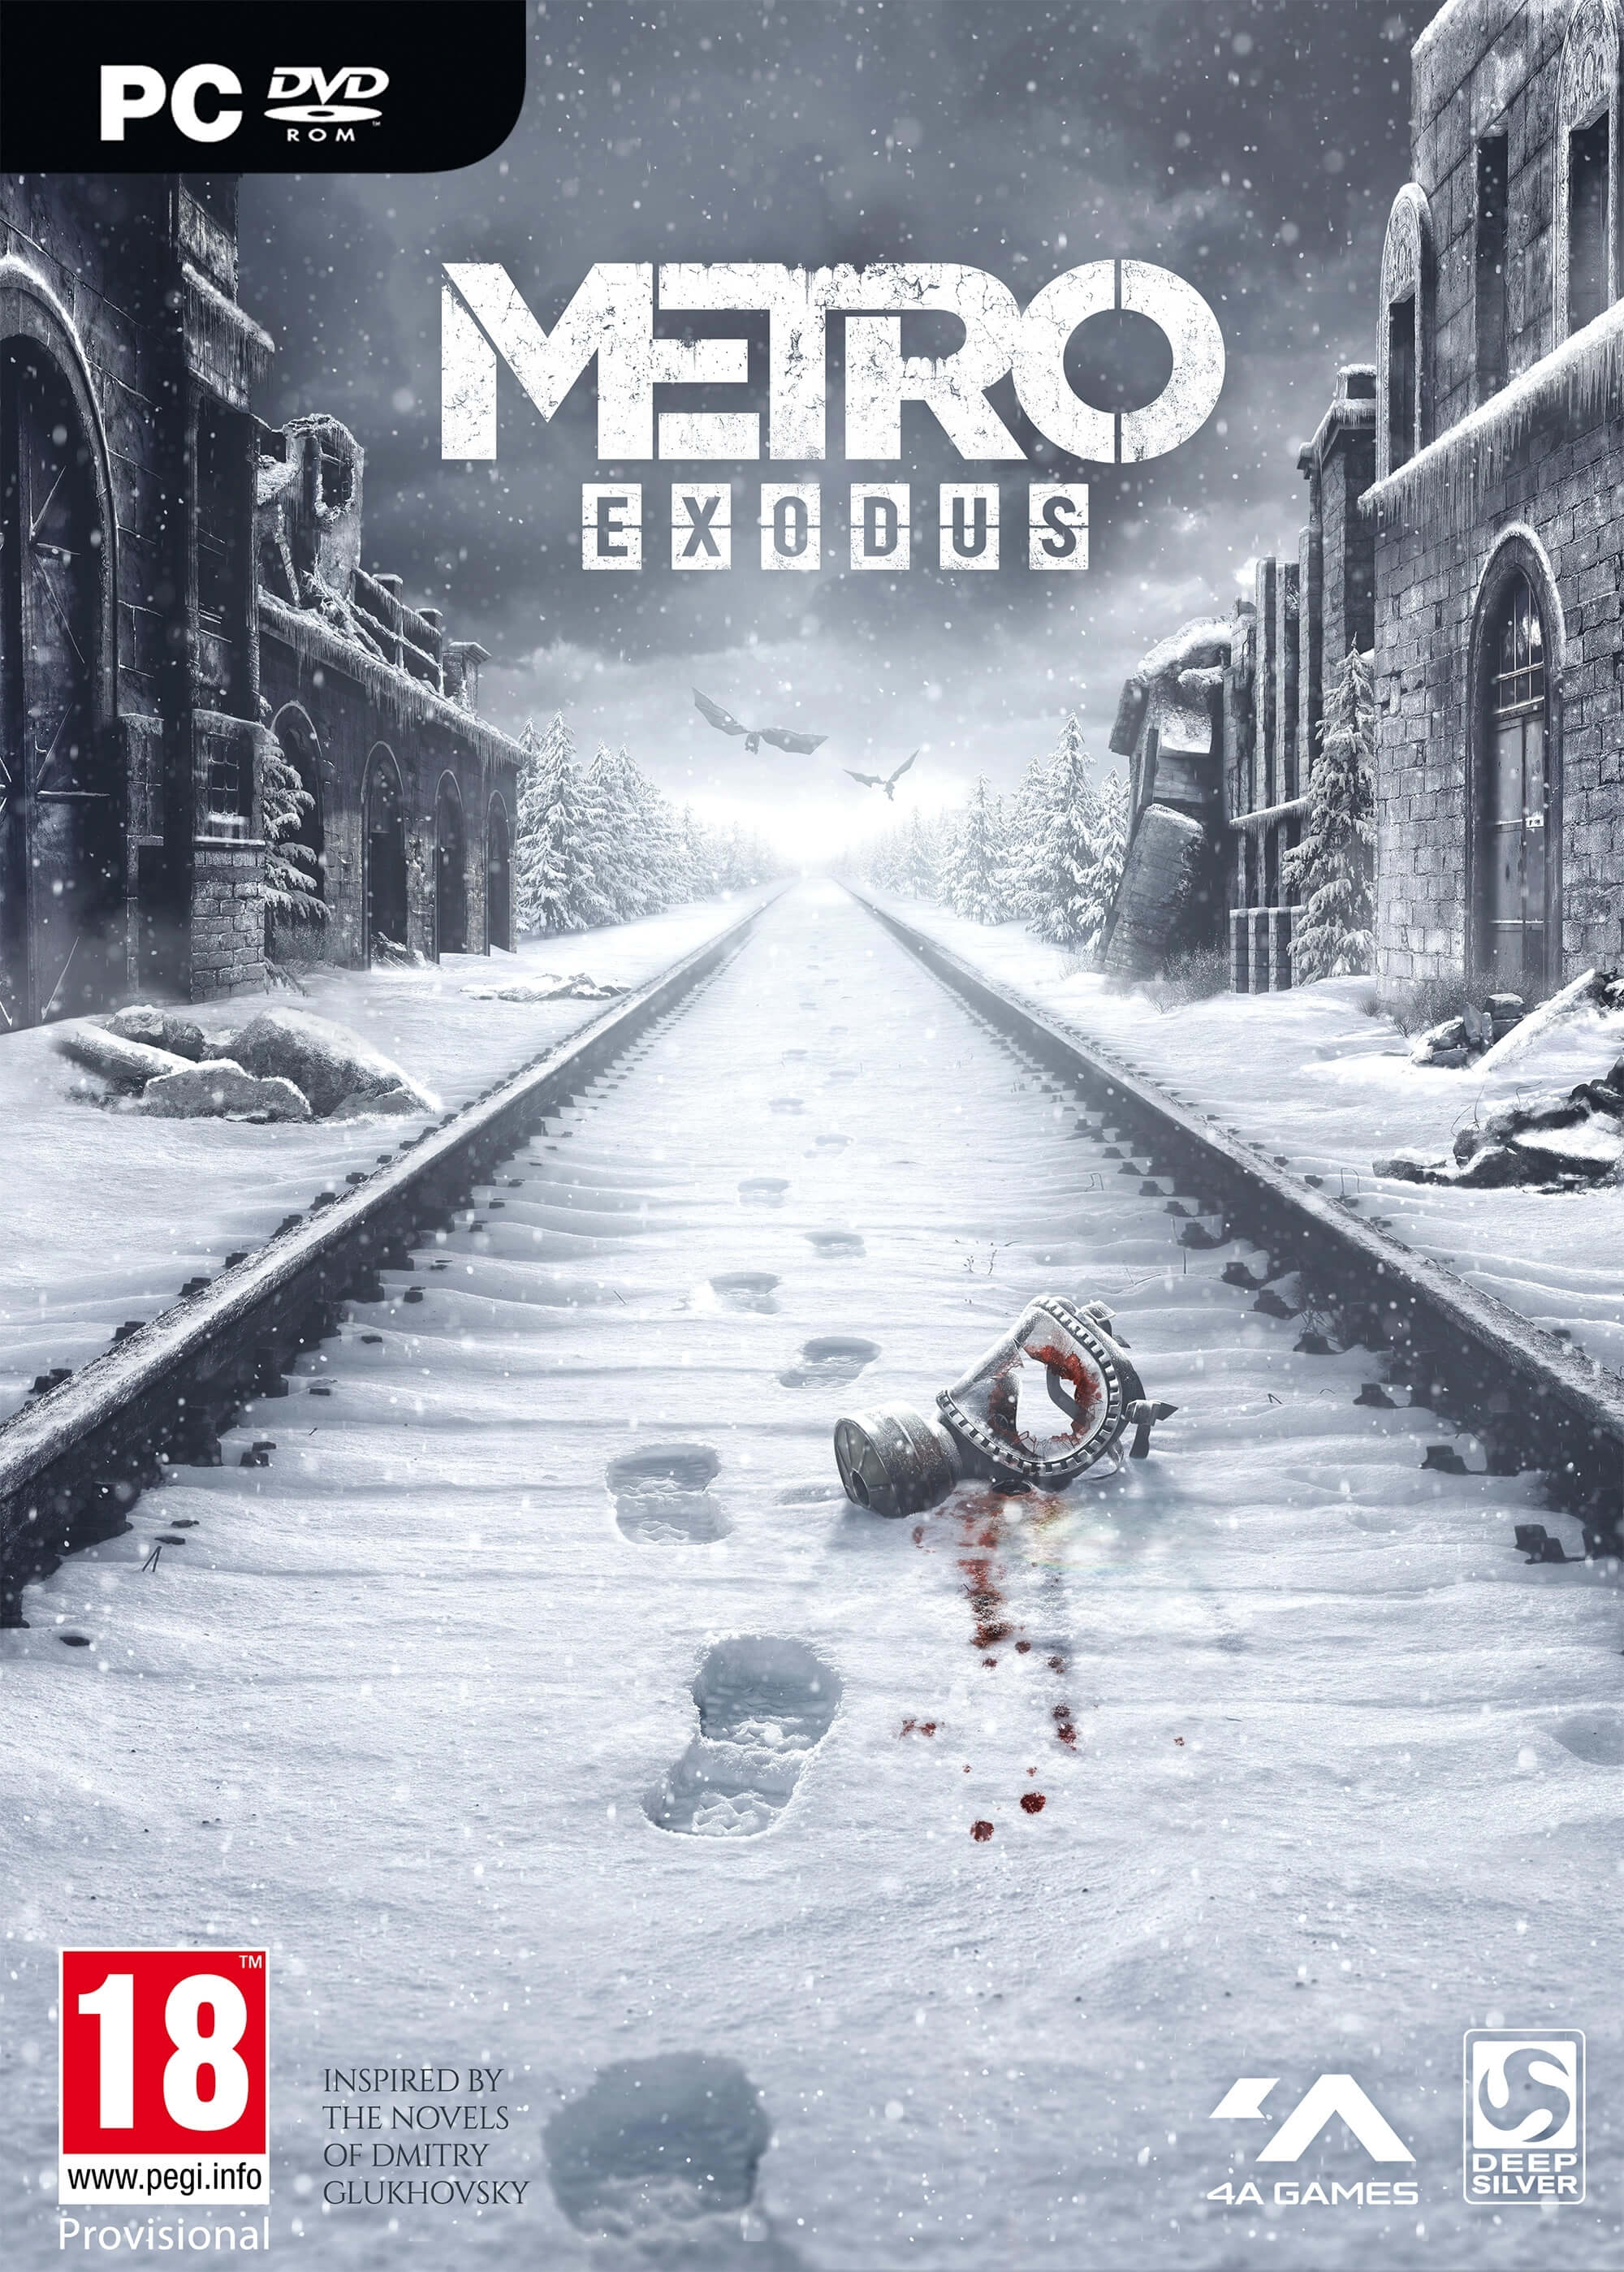 https://img5.downloadha.com/hosein/files/2019/02/Metro-Exodus-pc-cover-large.jpg